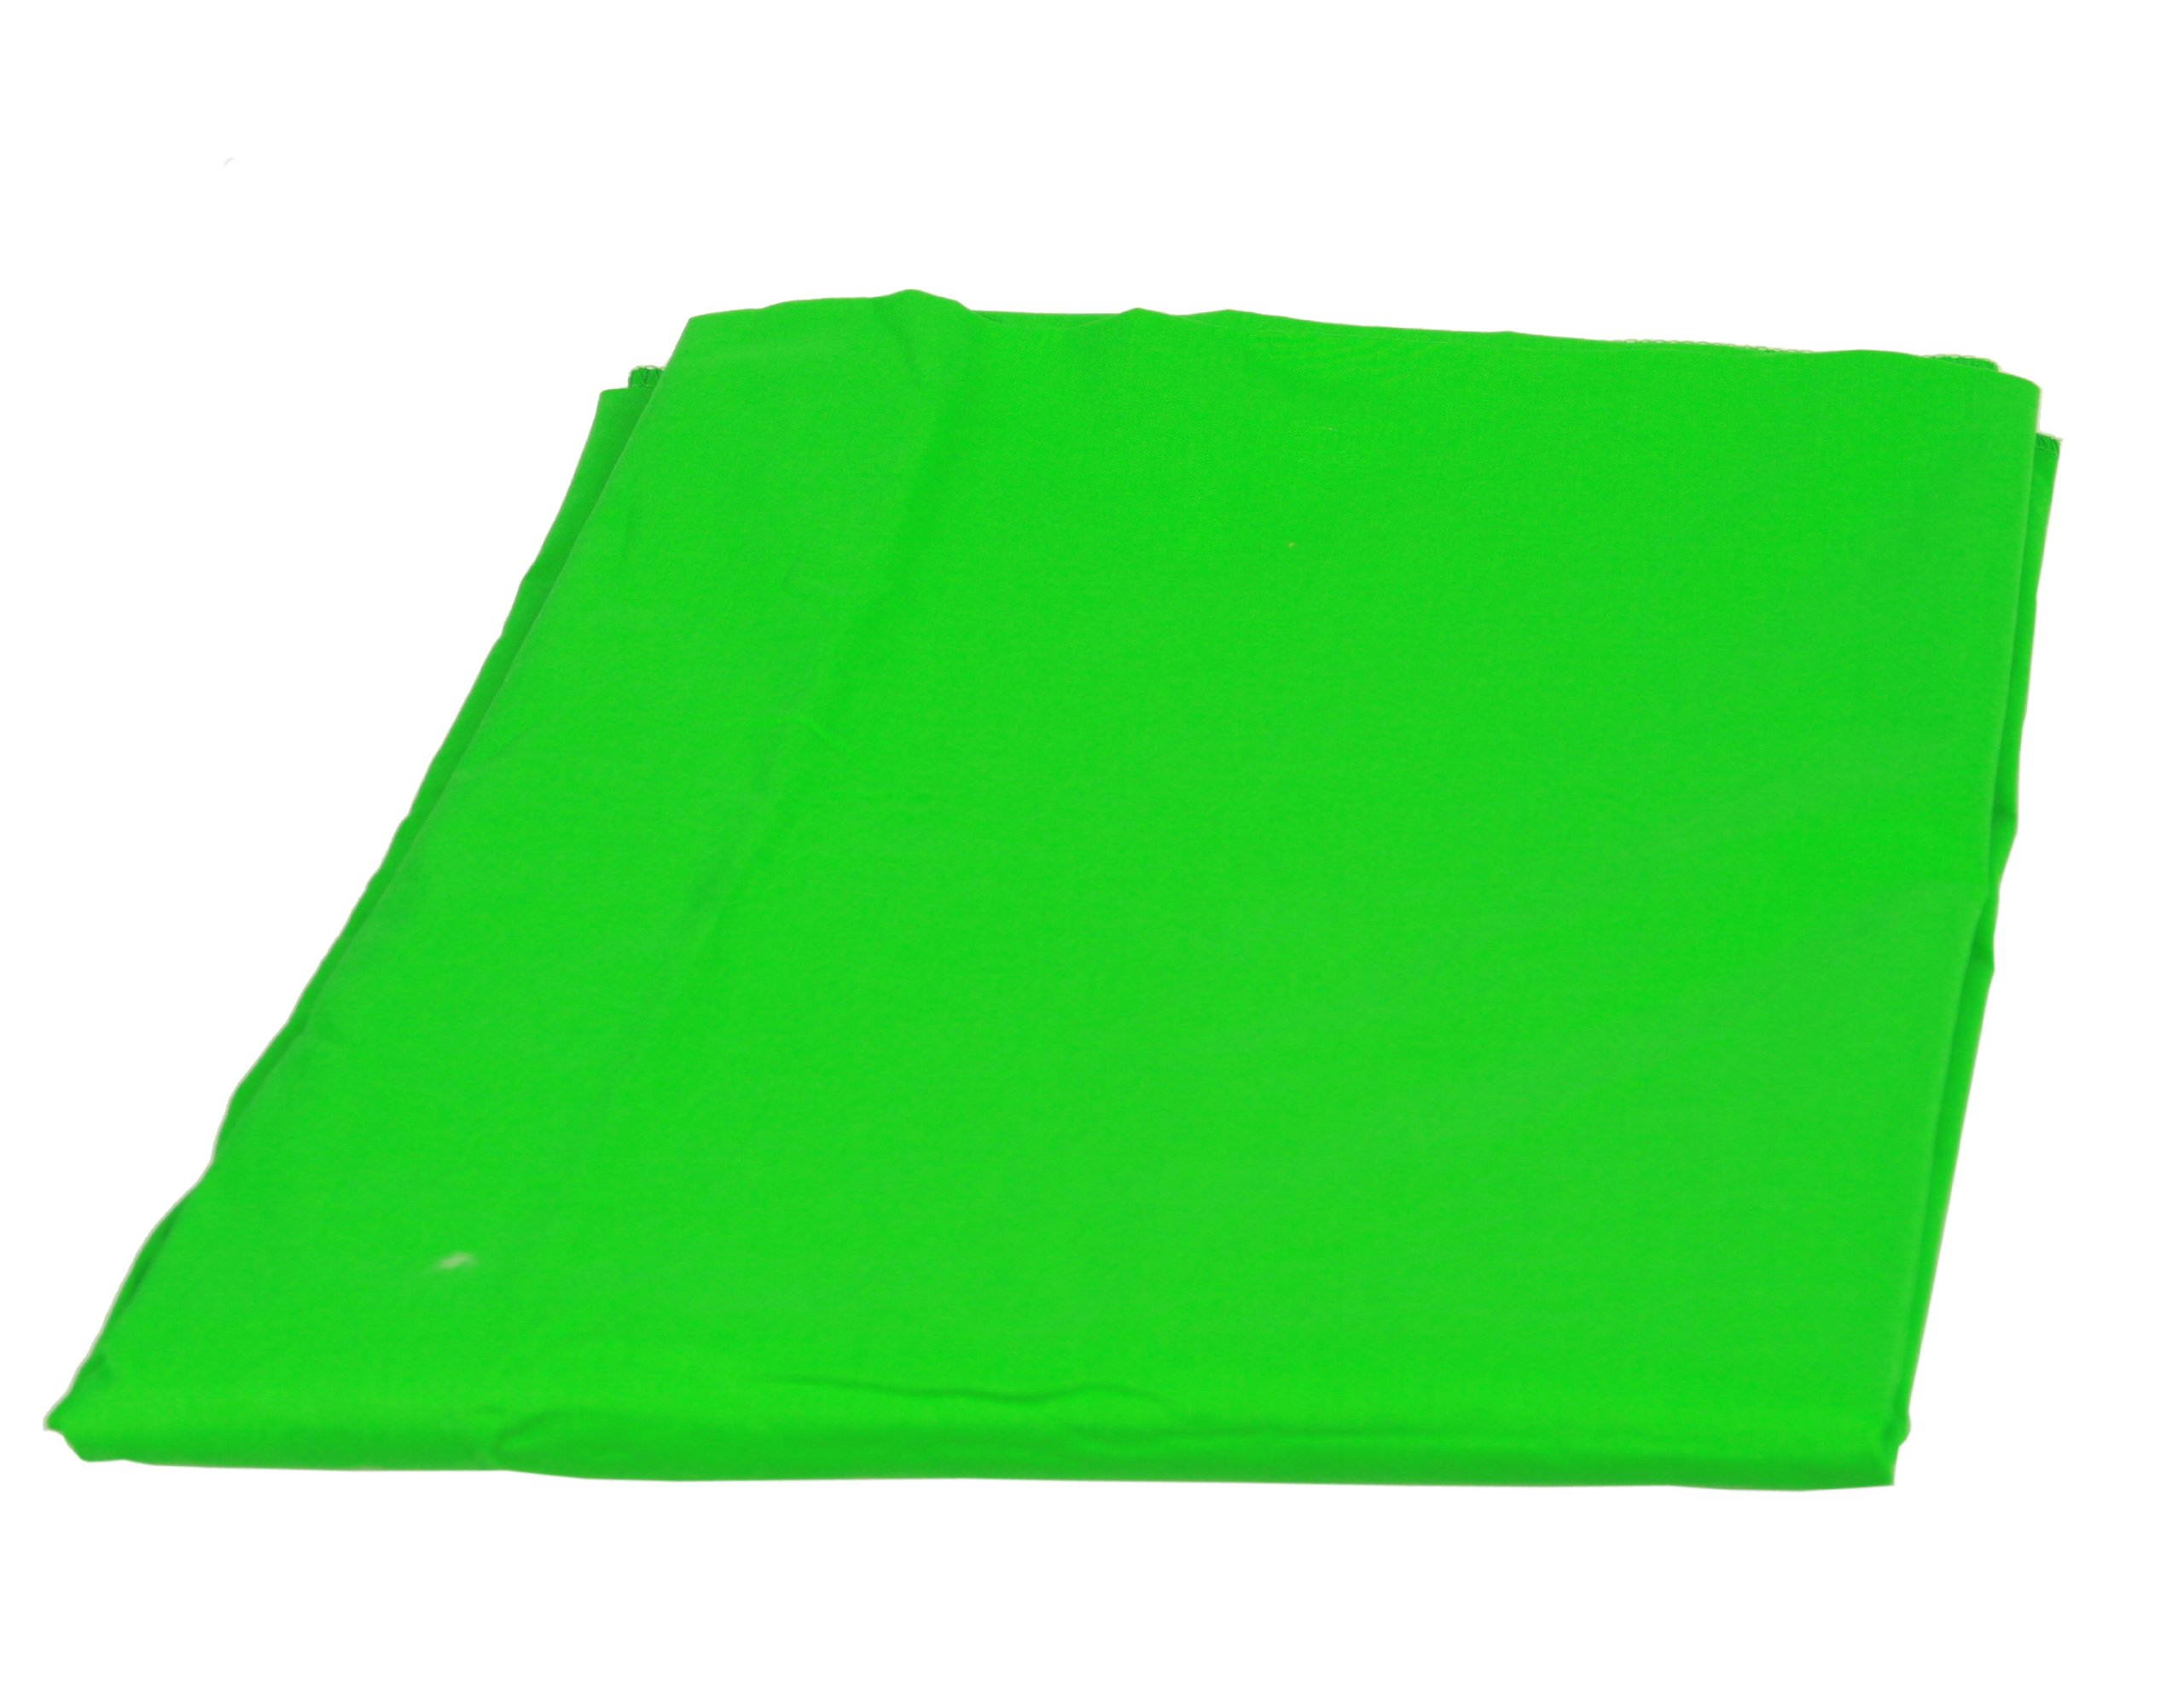 Green Screen Backdrop Background by Fancierstudio -6'x9' Chromakey Green Screen by fancierstudio